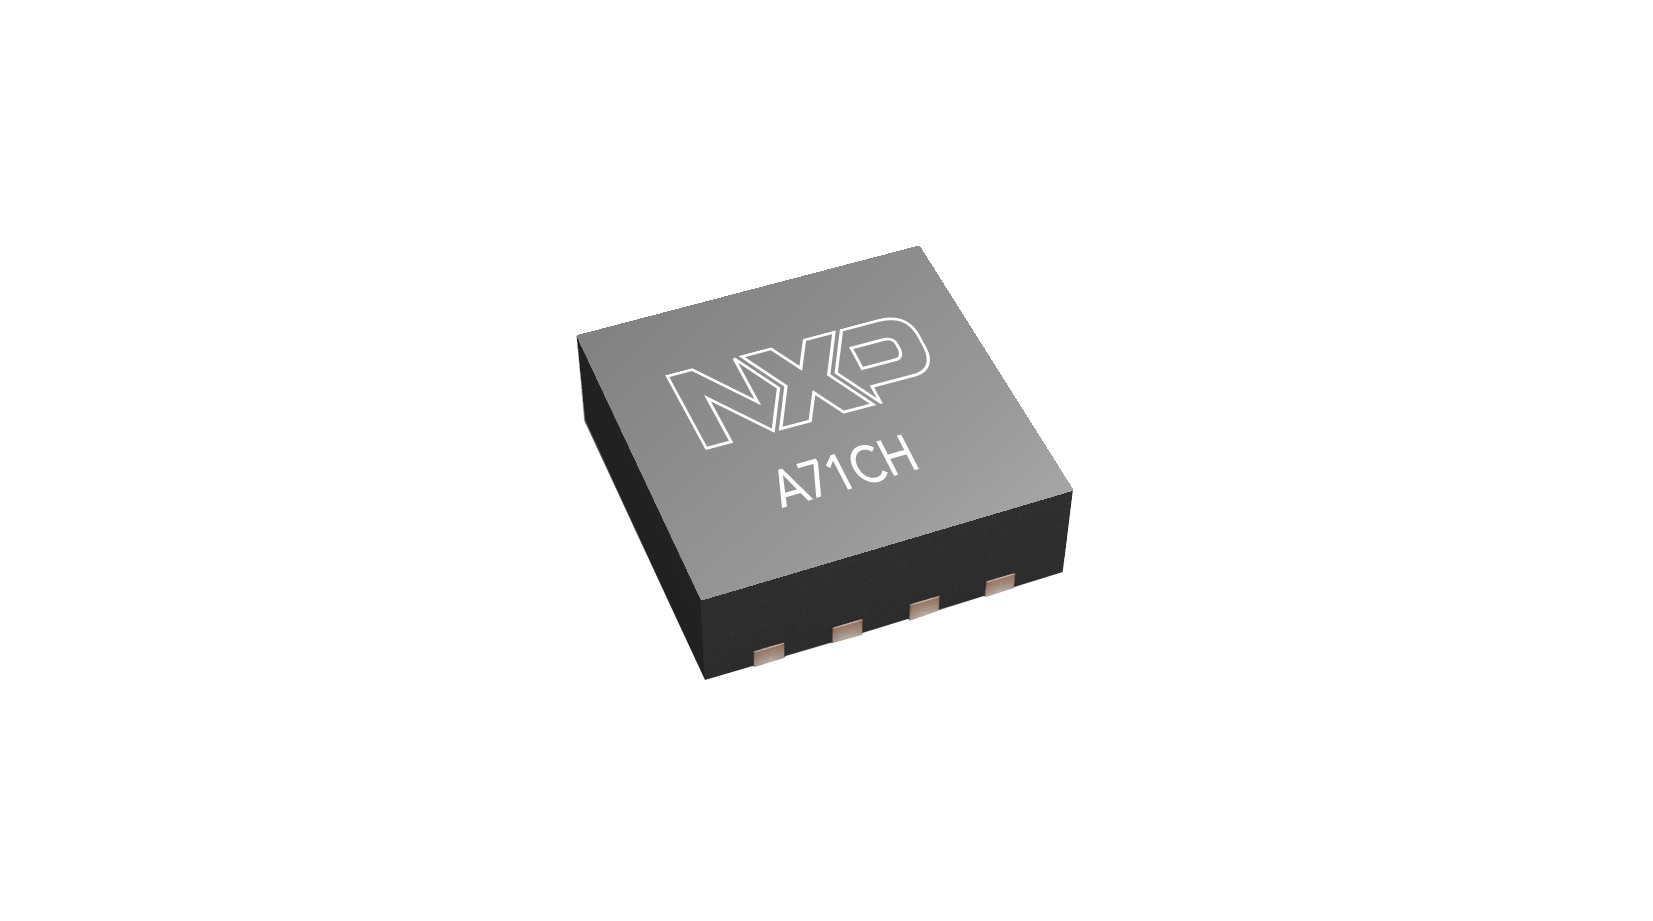 A71CH Plug & Trust for IoT in HVSON8 package